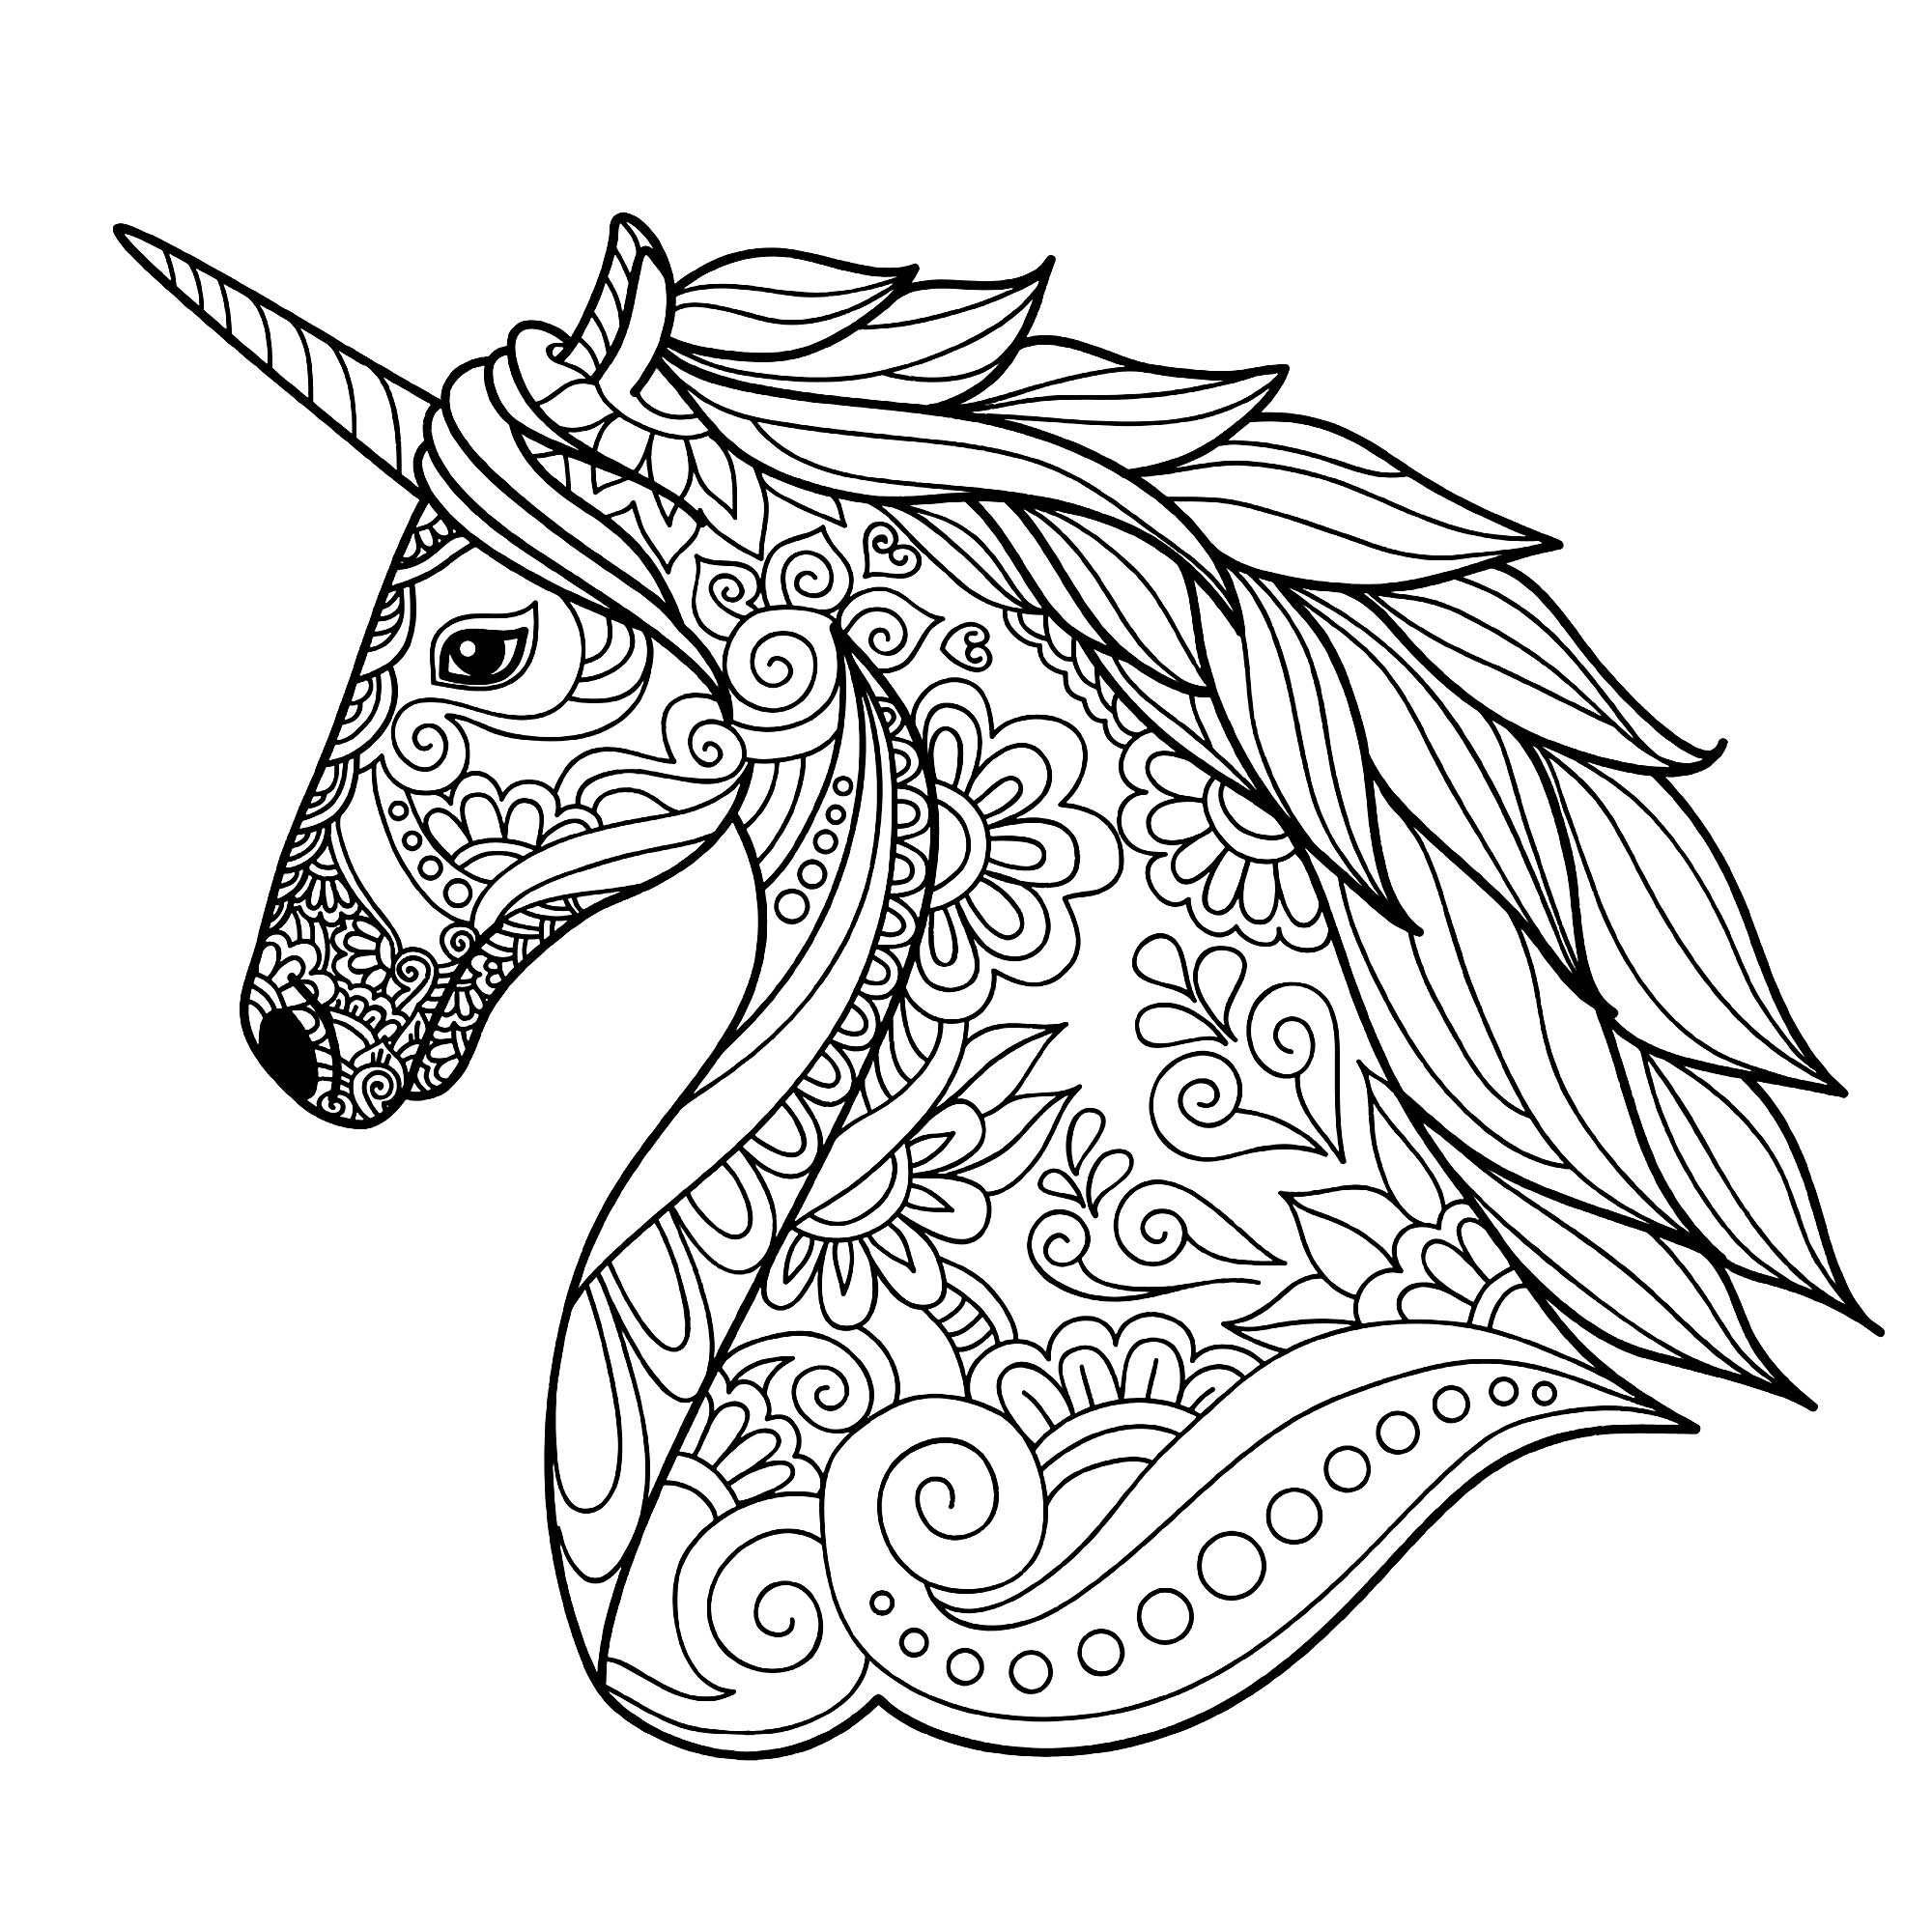 - Unicorns Free To Color For Children - Unicorns Kids Coloring Pages